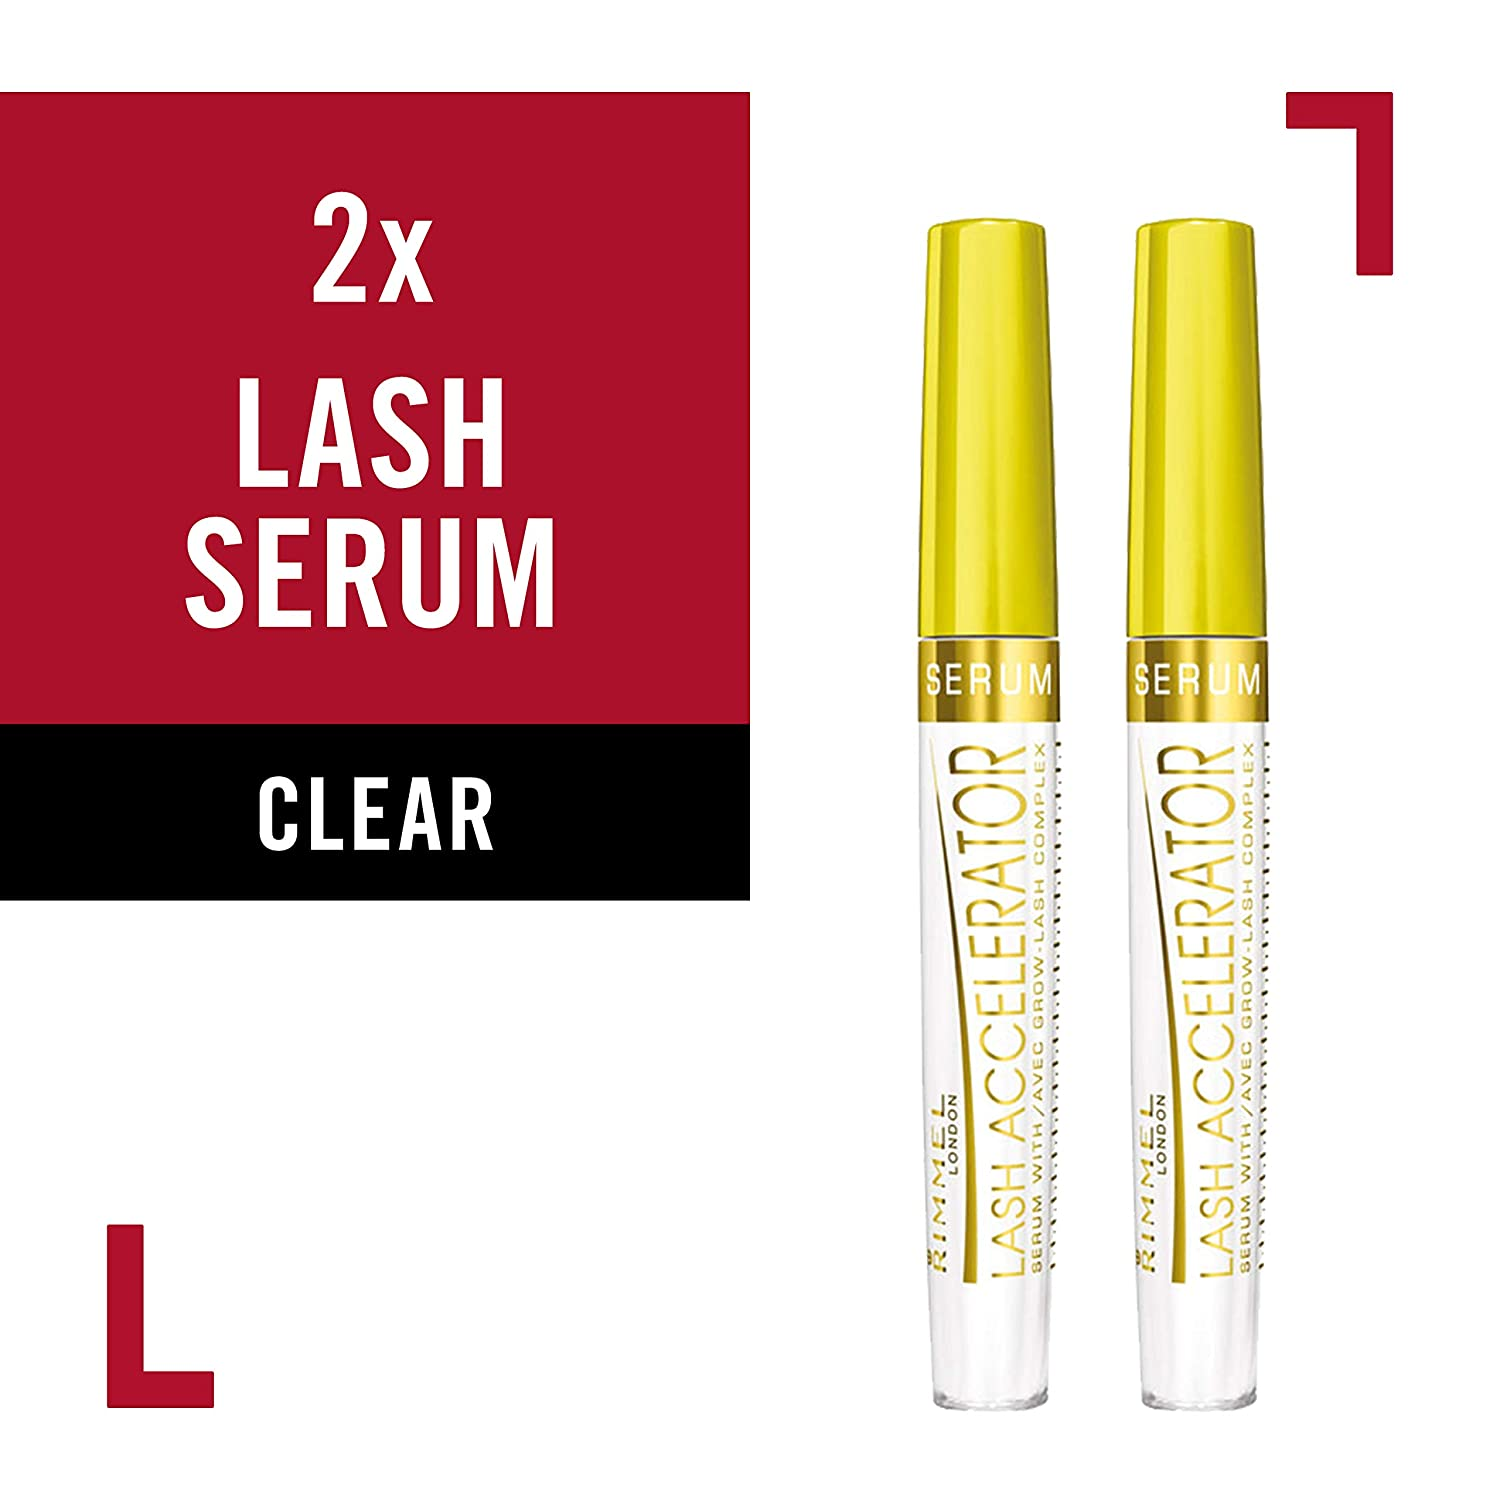 507076c9c40 Amazon.com: Rimmel Lash Accelerator Serum, Clear, Nourishing Serum for the  Appearance of Full, Lush Eyelashes and Eyebrows, Enhance the Natural Growth  of ...